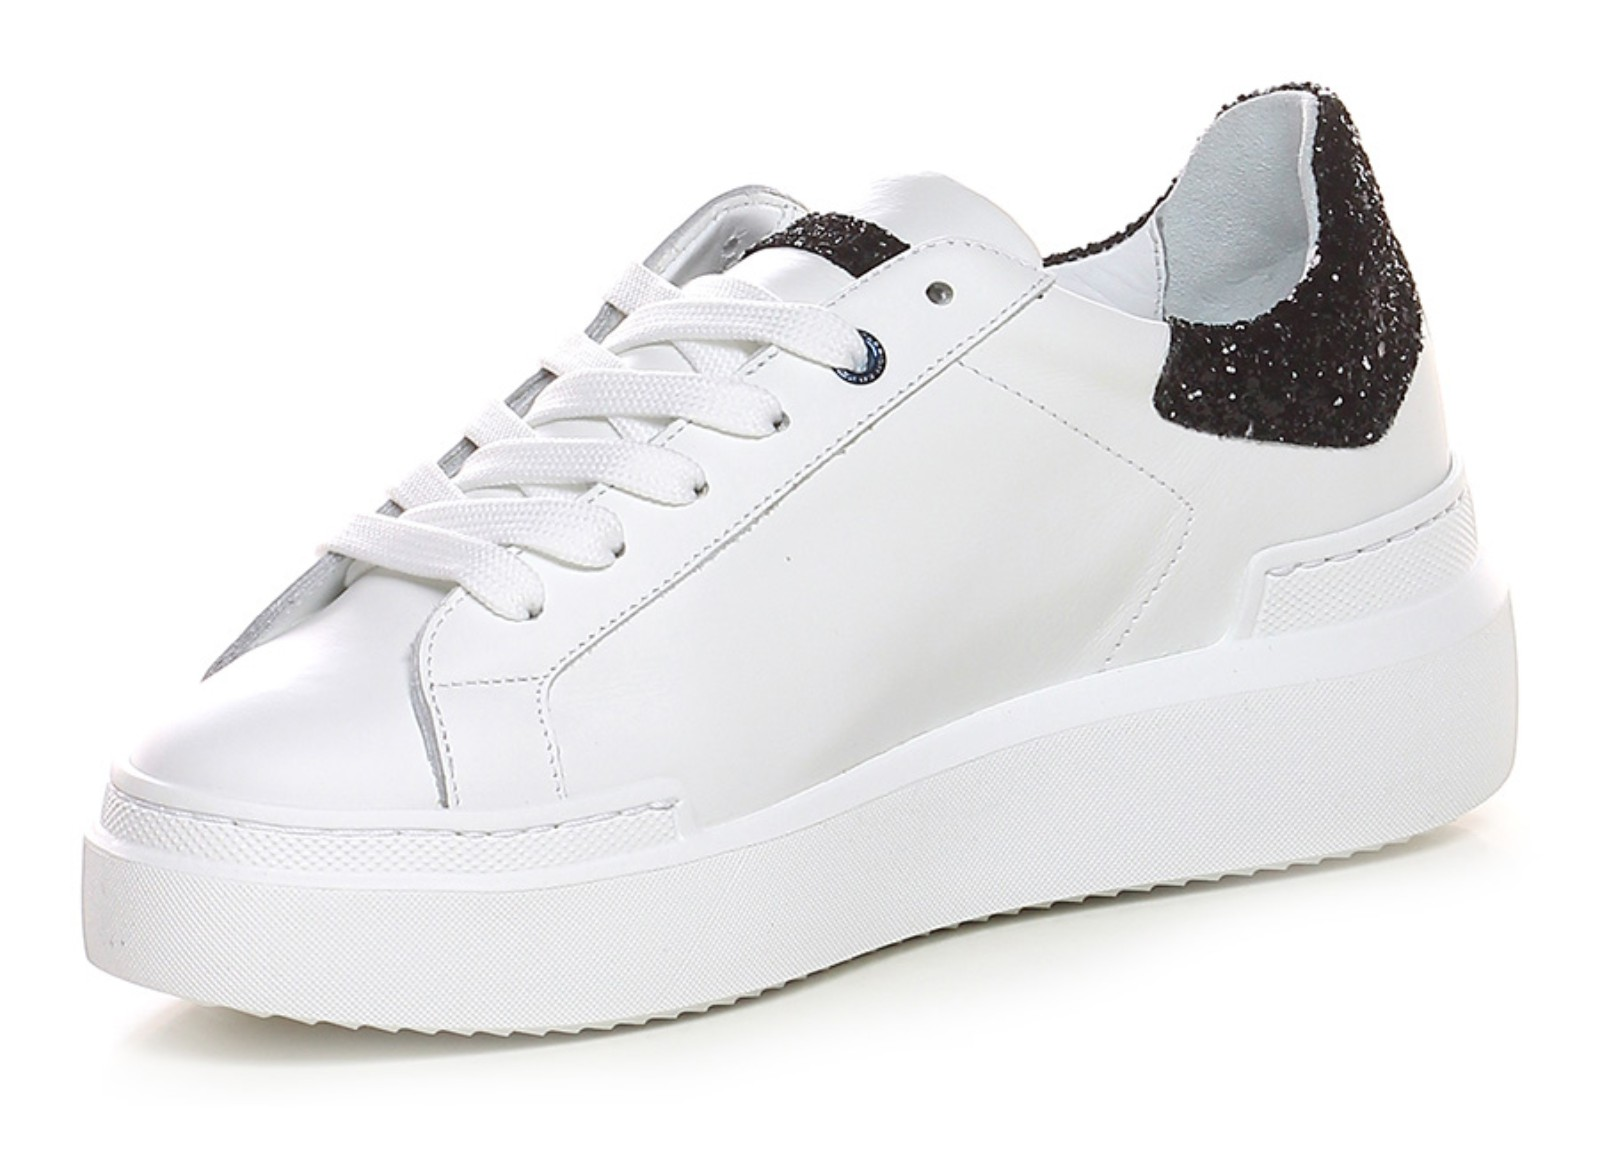 ec0aa41a22 ED PARRISH CKLD SQ11 SNEAKERS SARAH IN PELLE BIANCA CON STRASS NERI